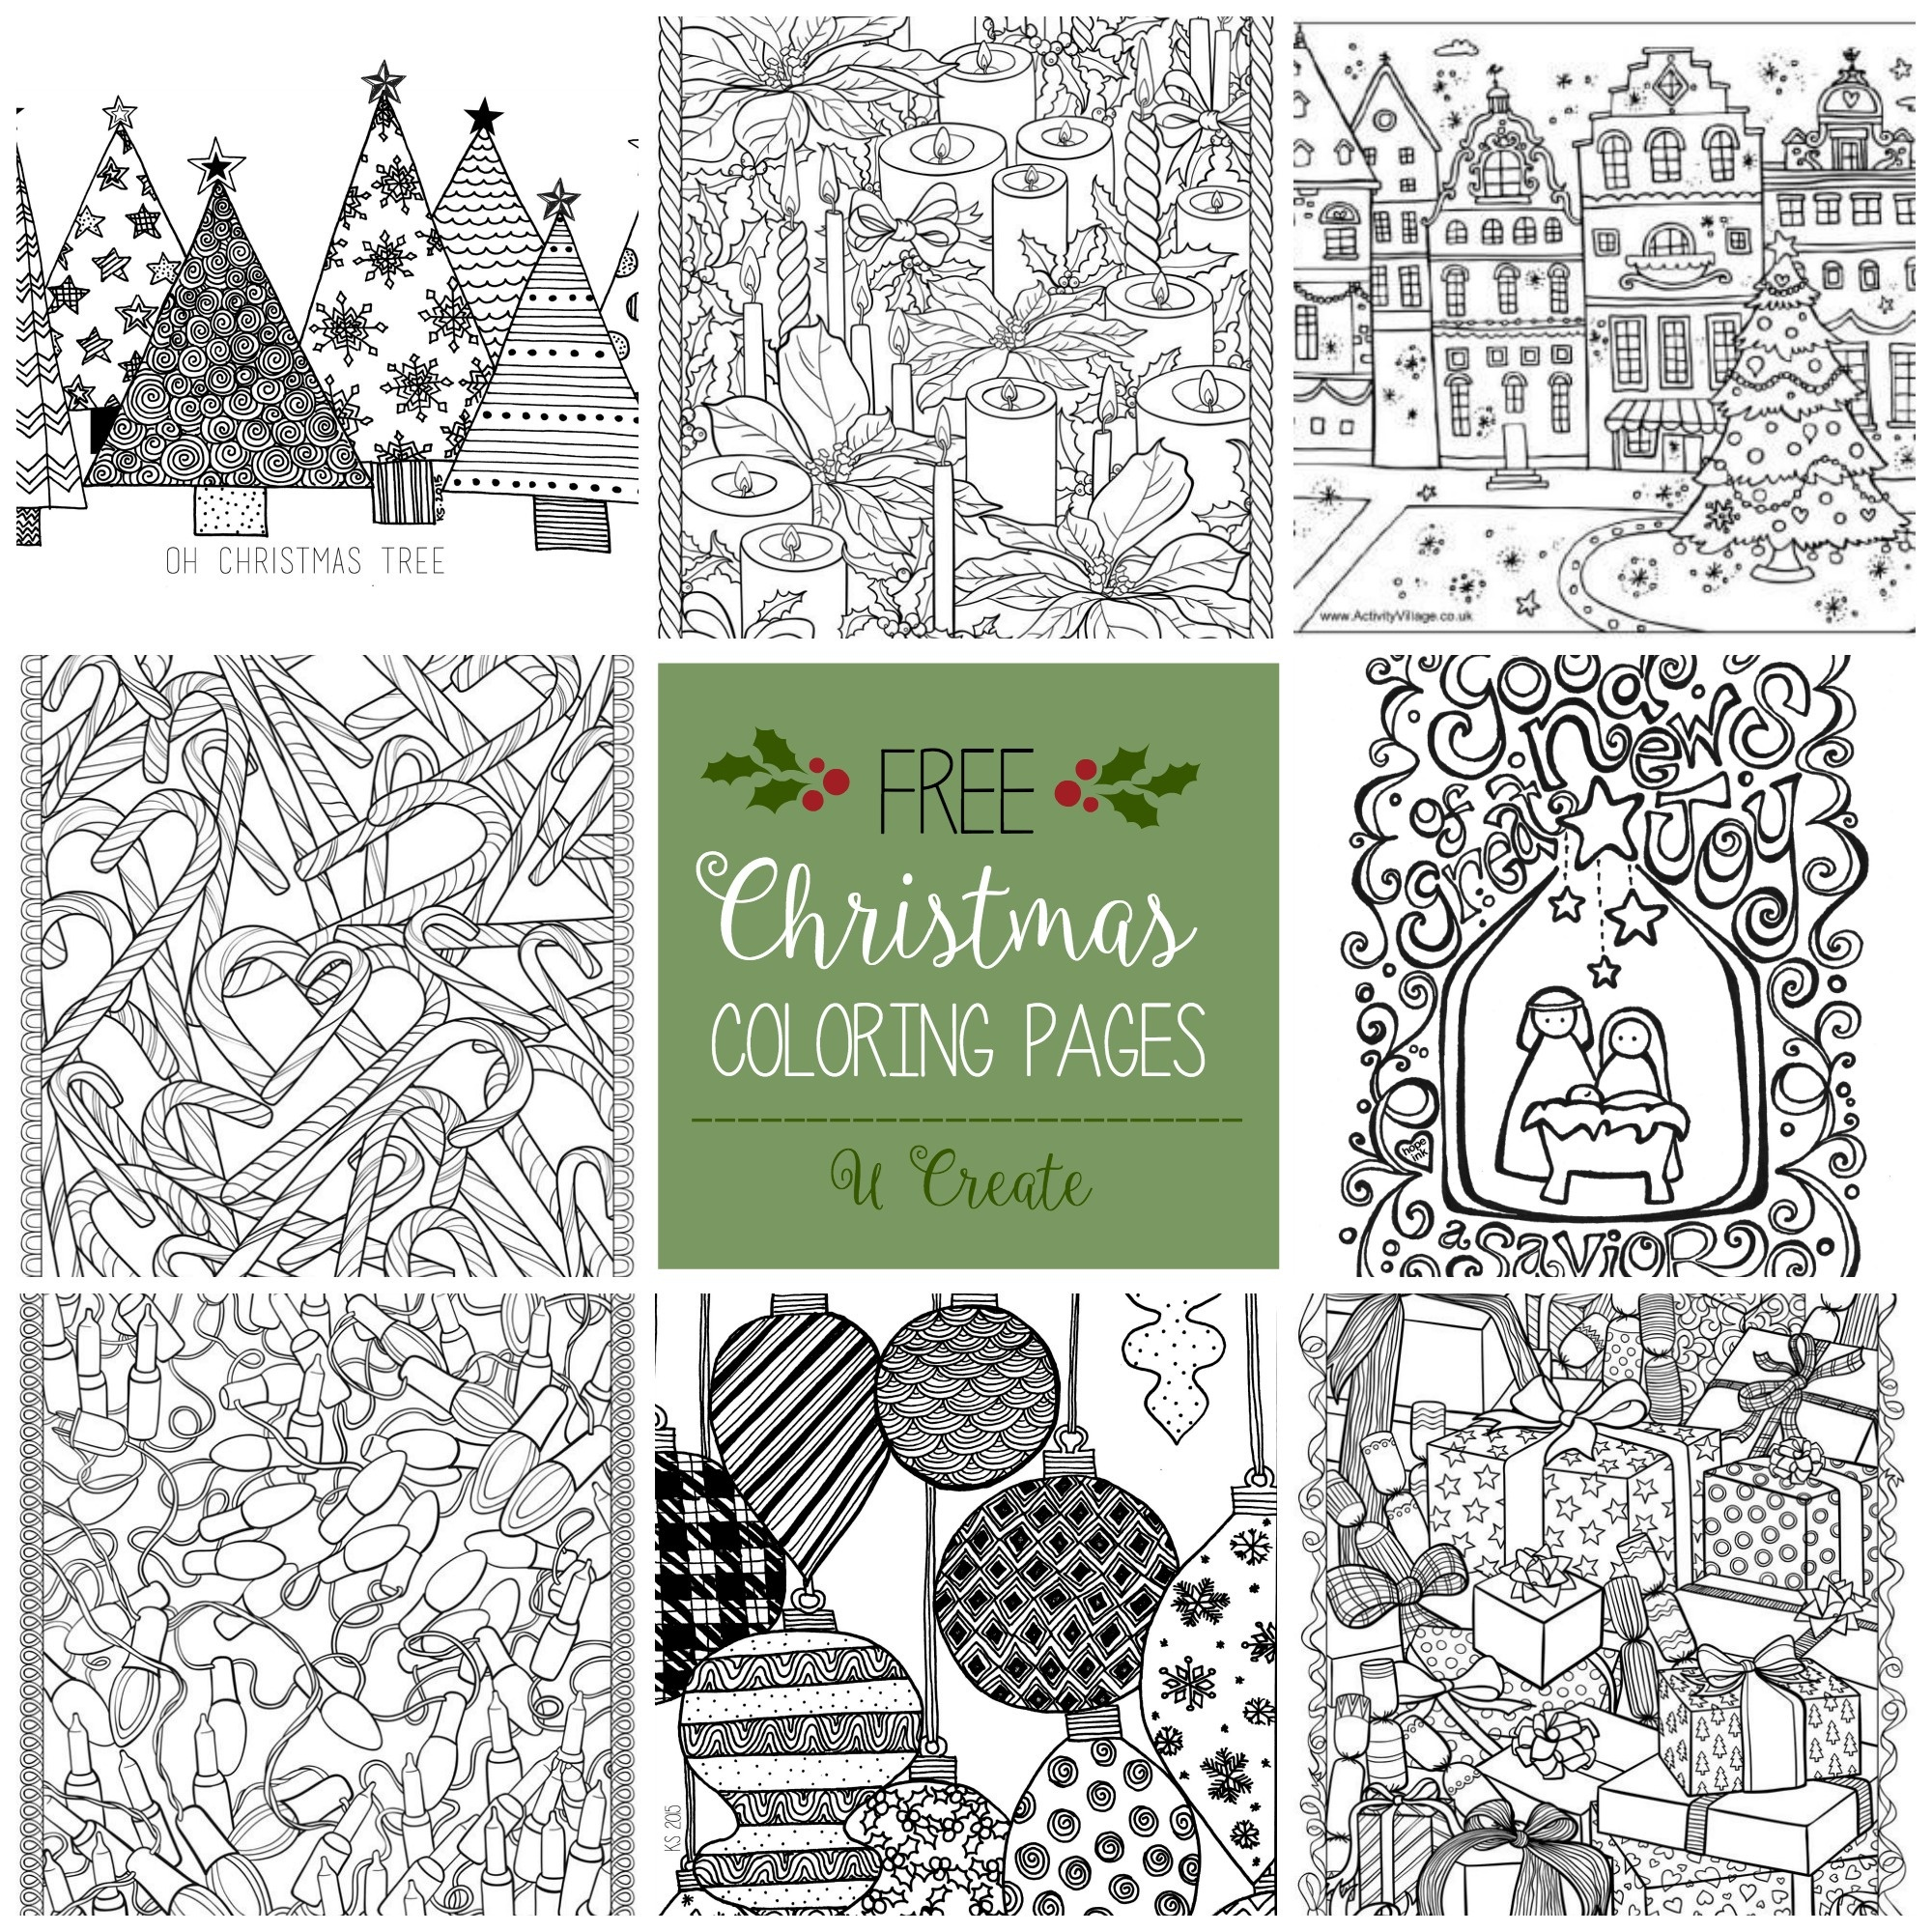 Free Christmas Adult Coloring Pages - U Create - Free Printable Christmas Coloring Sheets